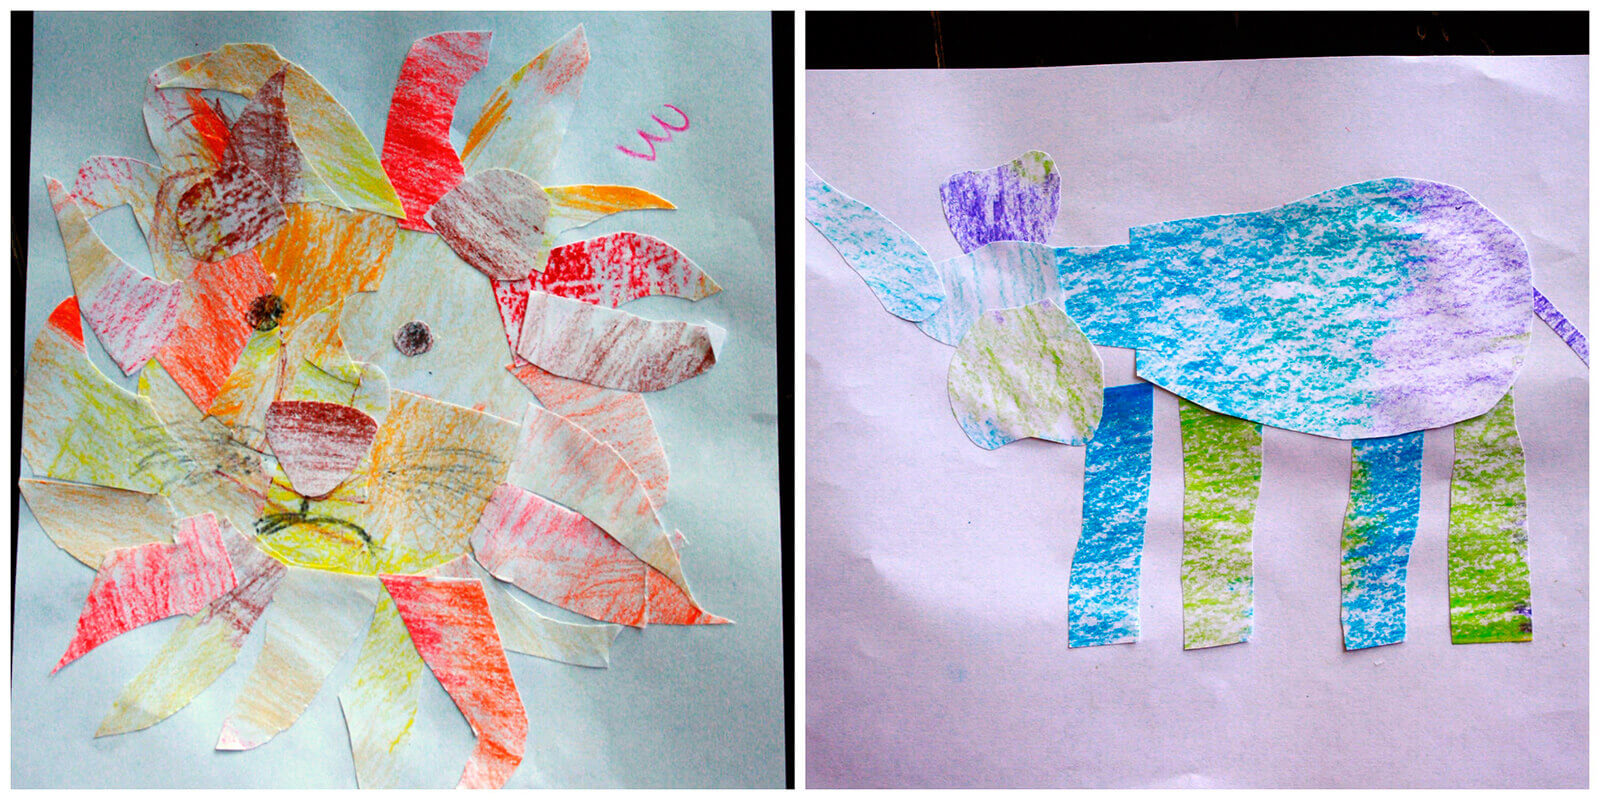 Last fall my younger children were especially excited to see Elspeth's art lessons!